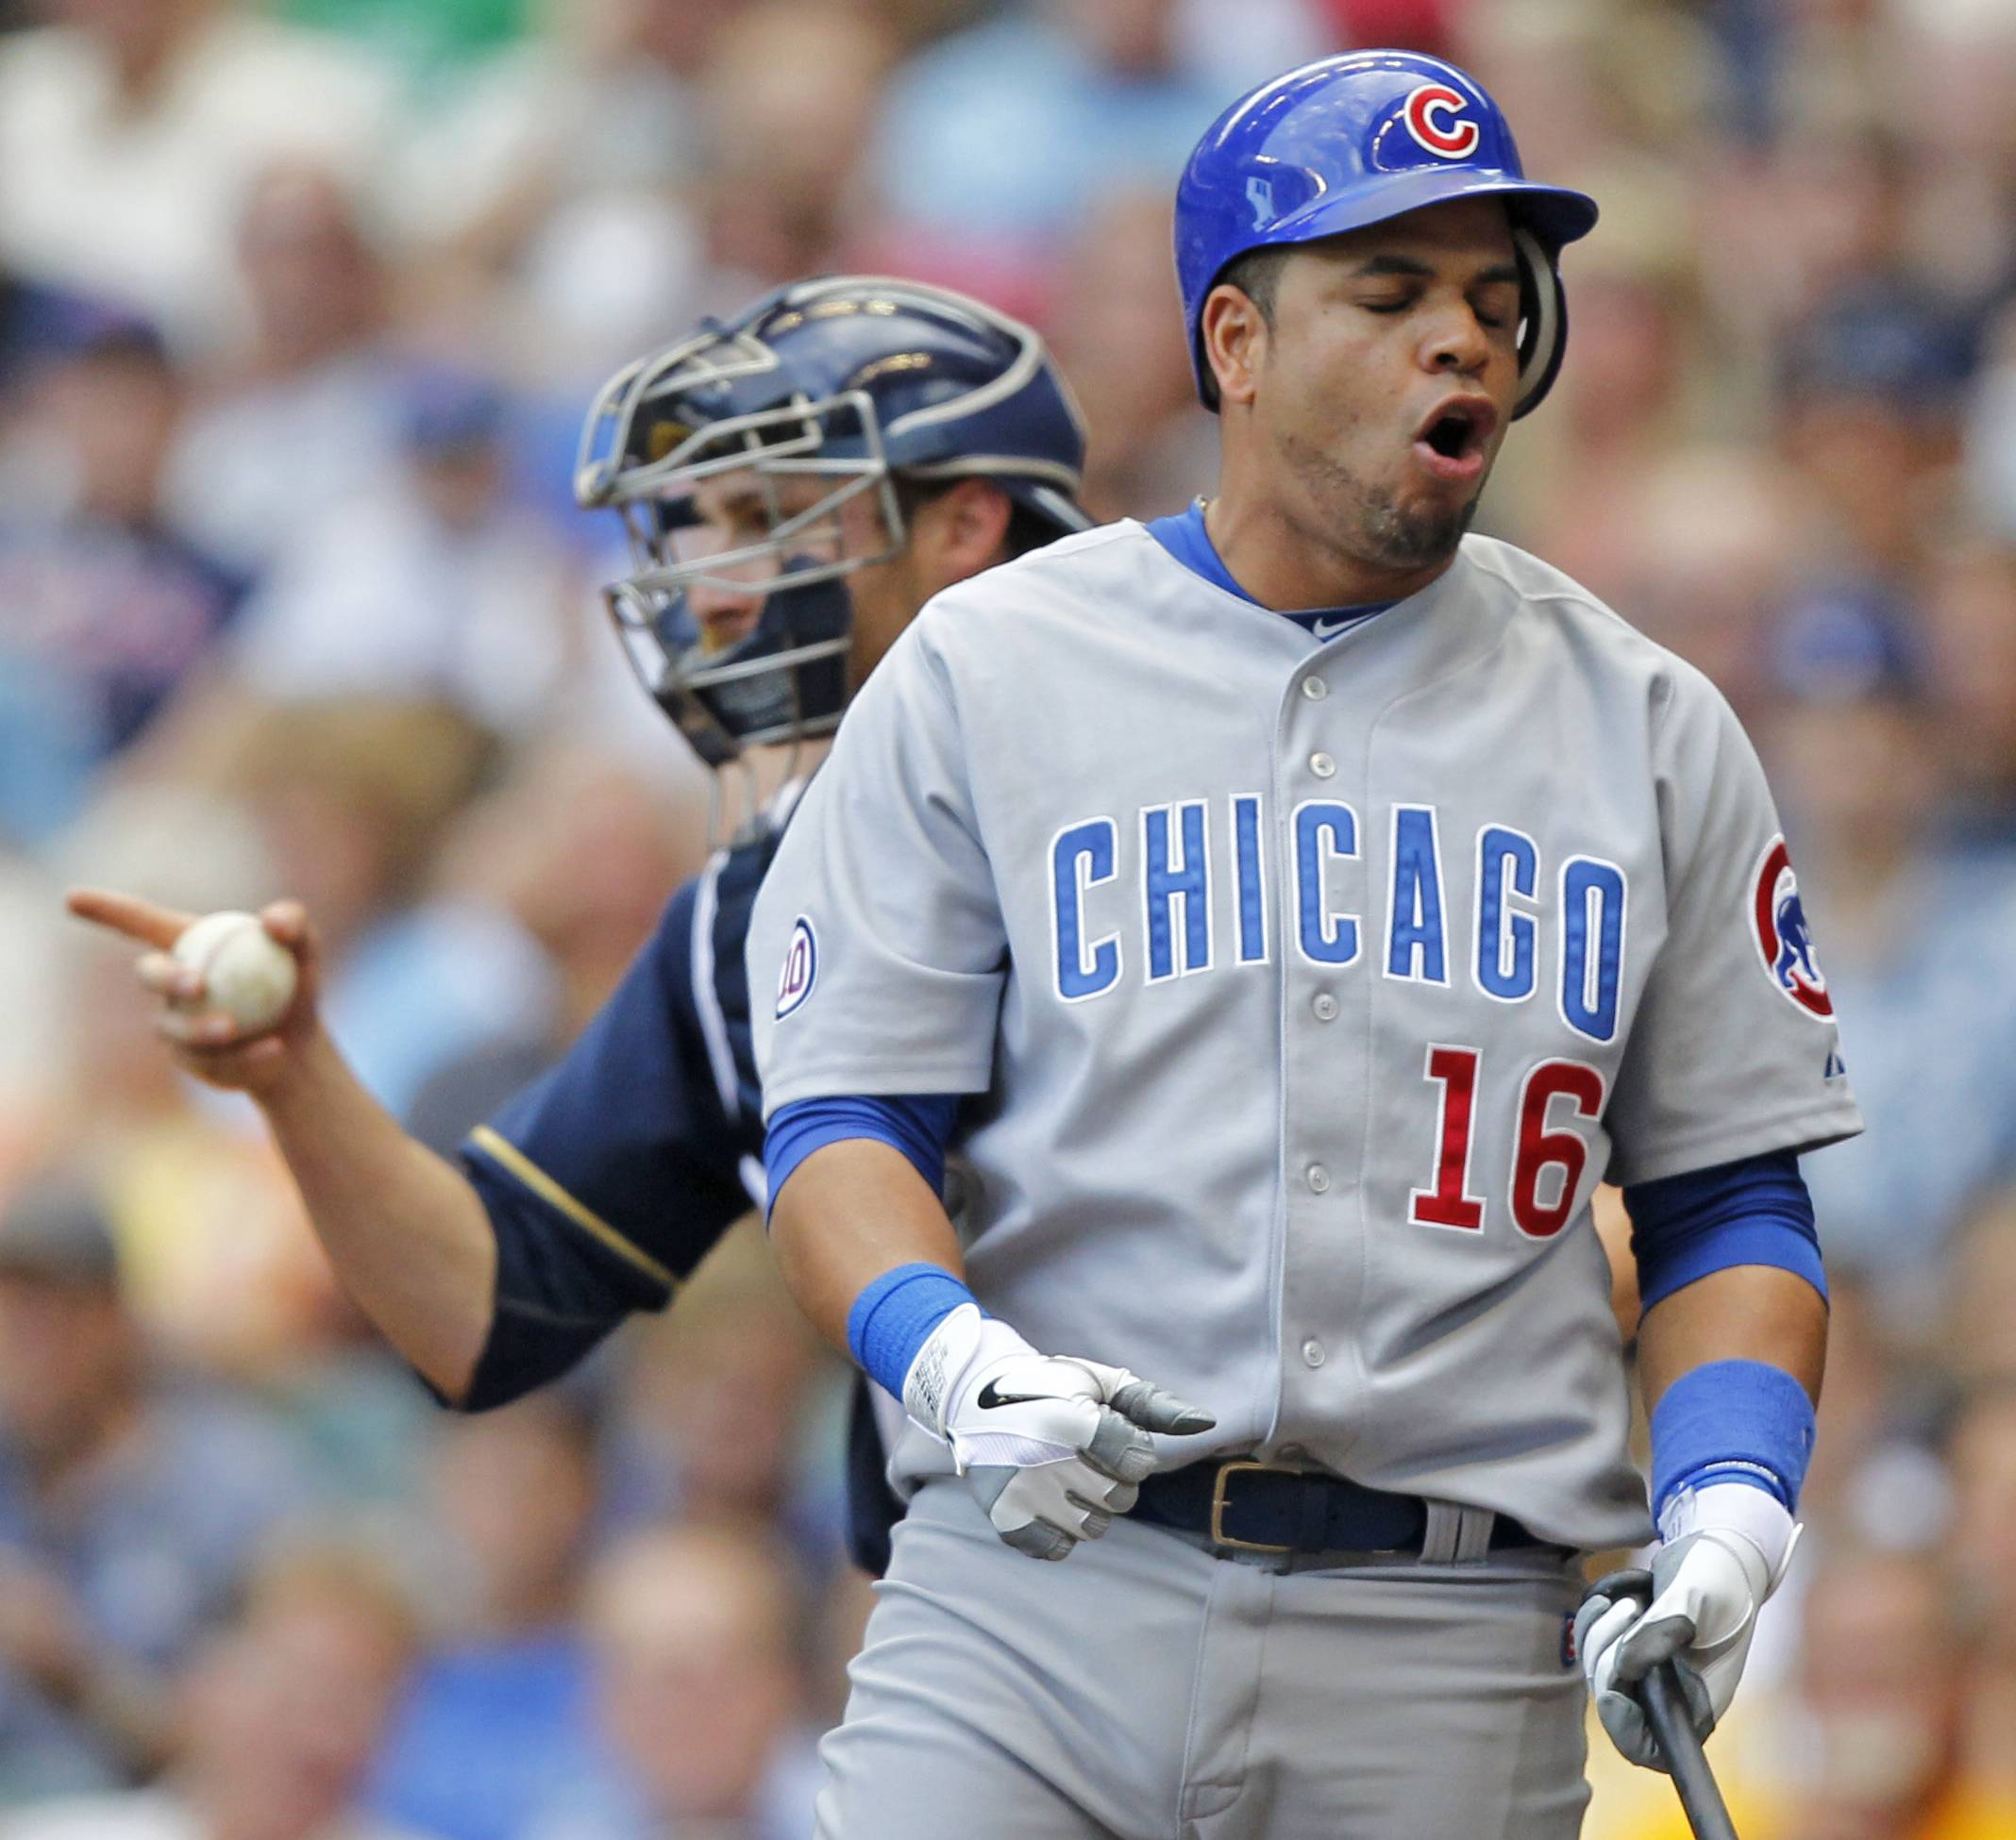 Cubs third baseman Aramis Ramirez reacts after striking out during Sunday's sixth inning in Milwaukee.